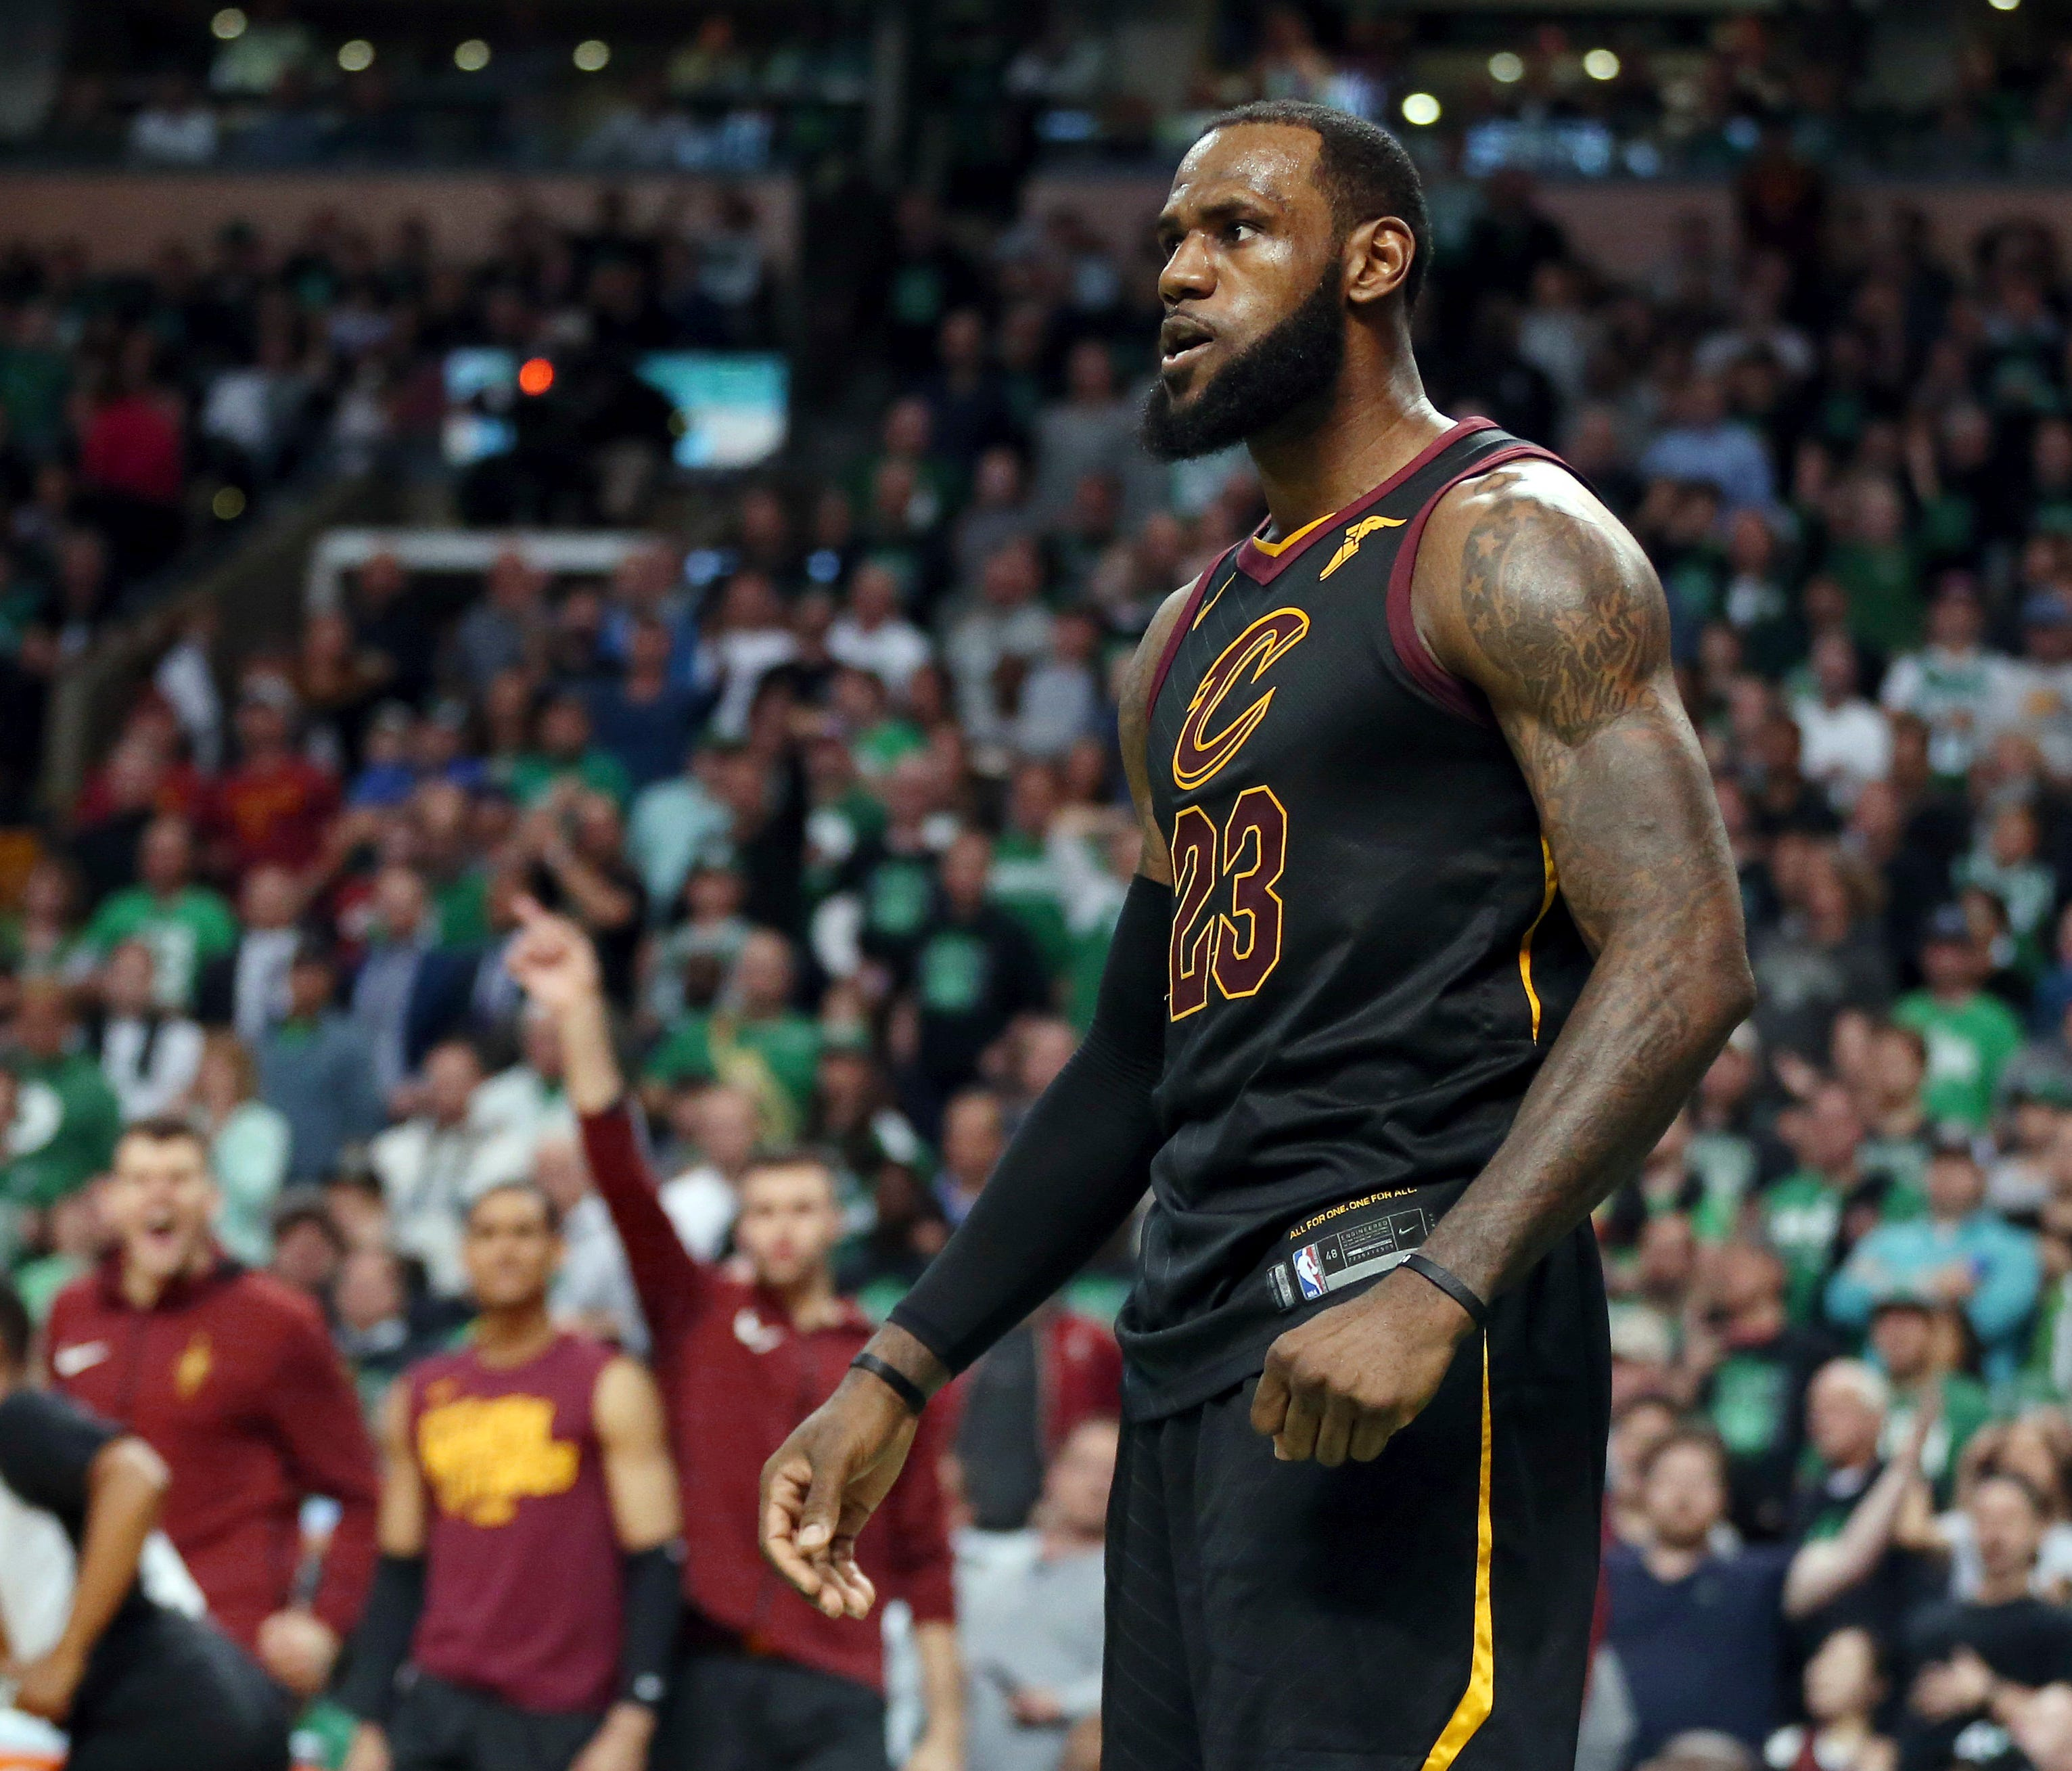 Cleveland Cavaliers forward LeBron James celebrates a basket against the Boston Celtics during the second half of Game 7.